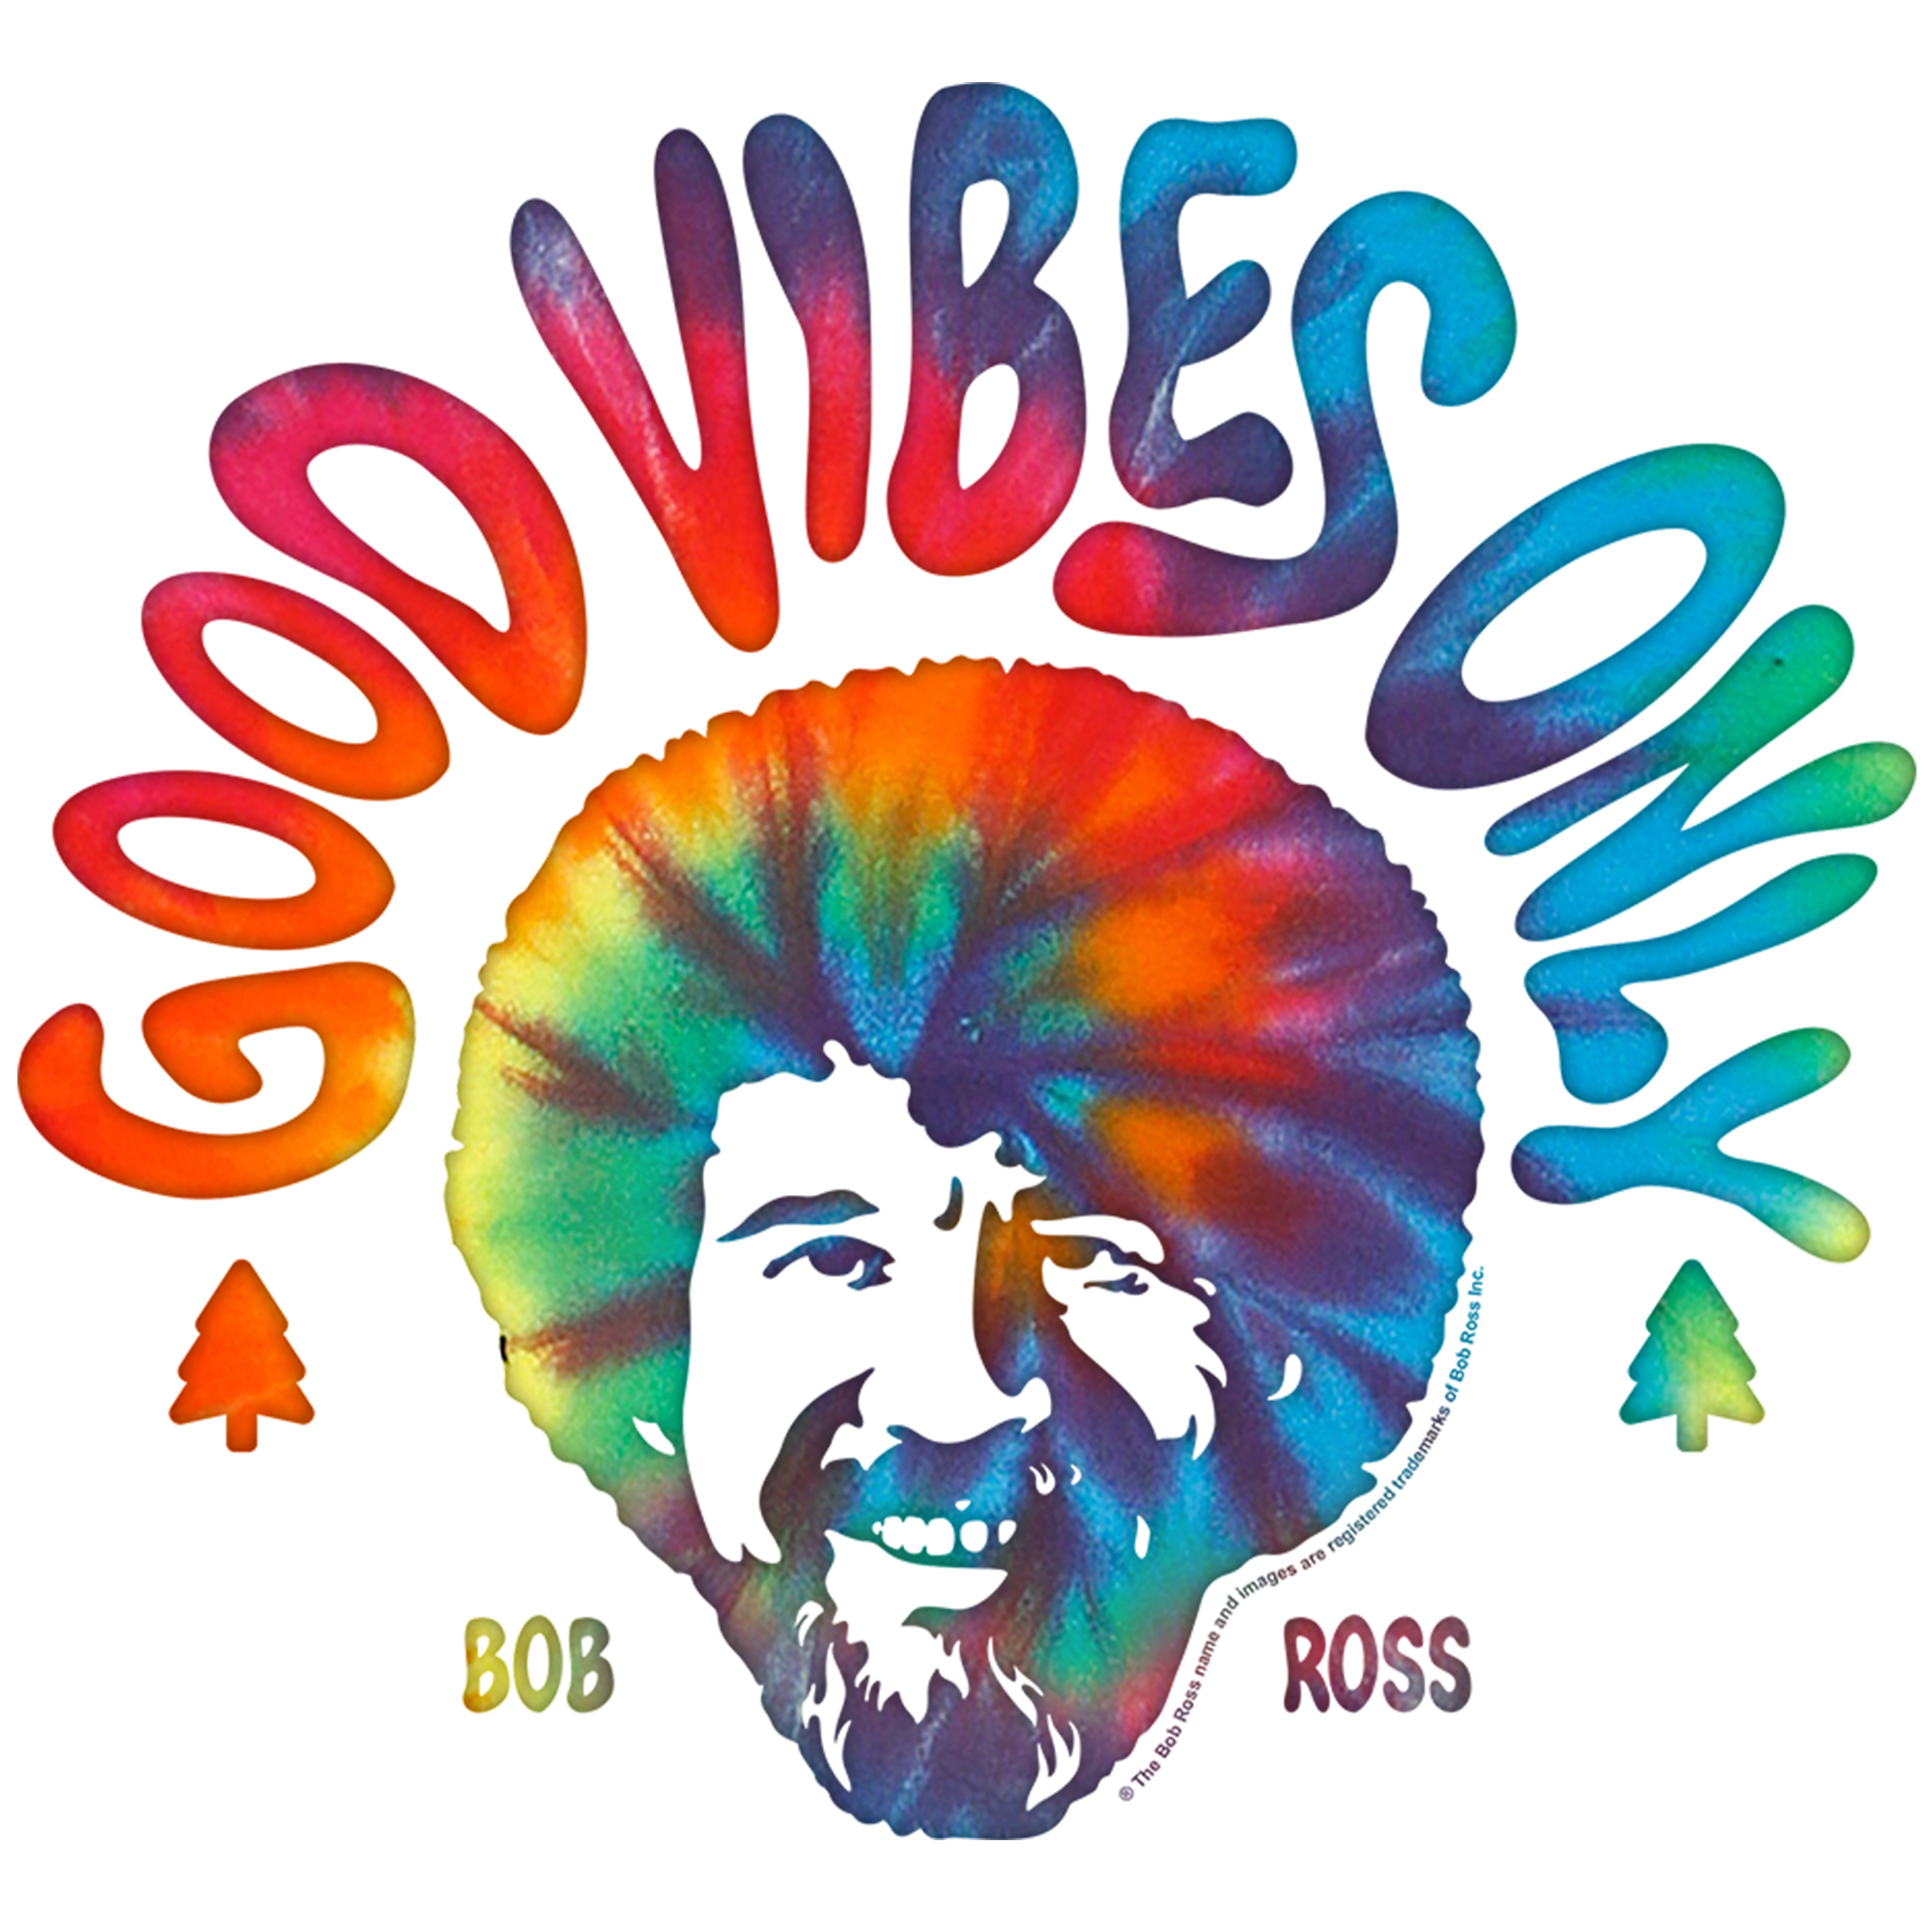 Good Vibes Only Bob Ross Shirt 2394260 Hd Wallpaper